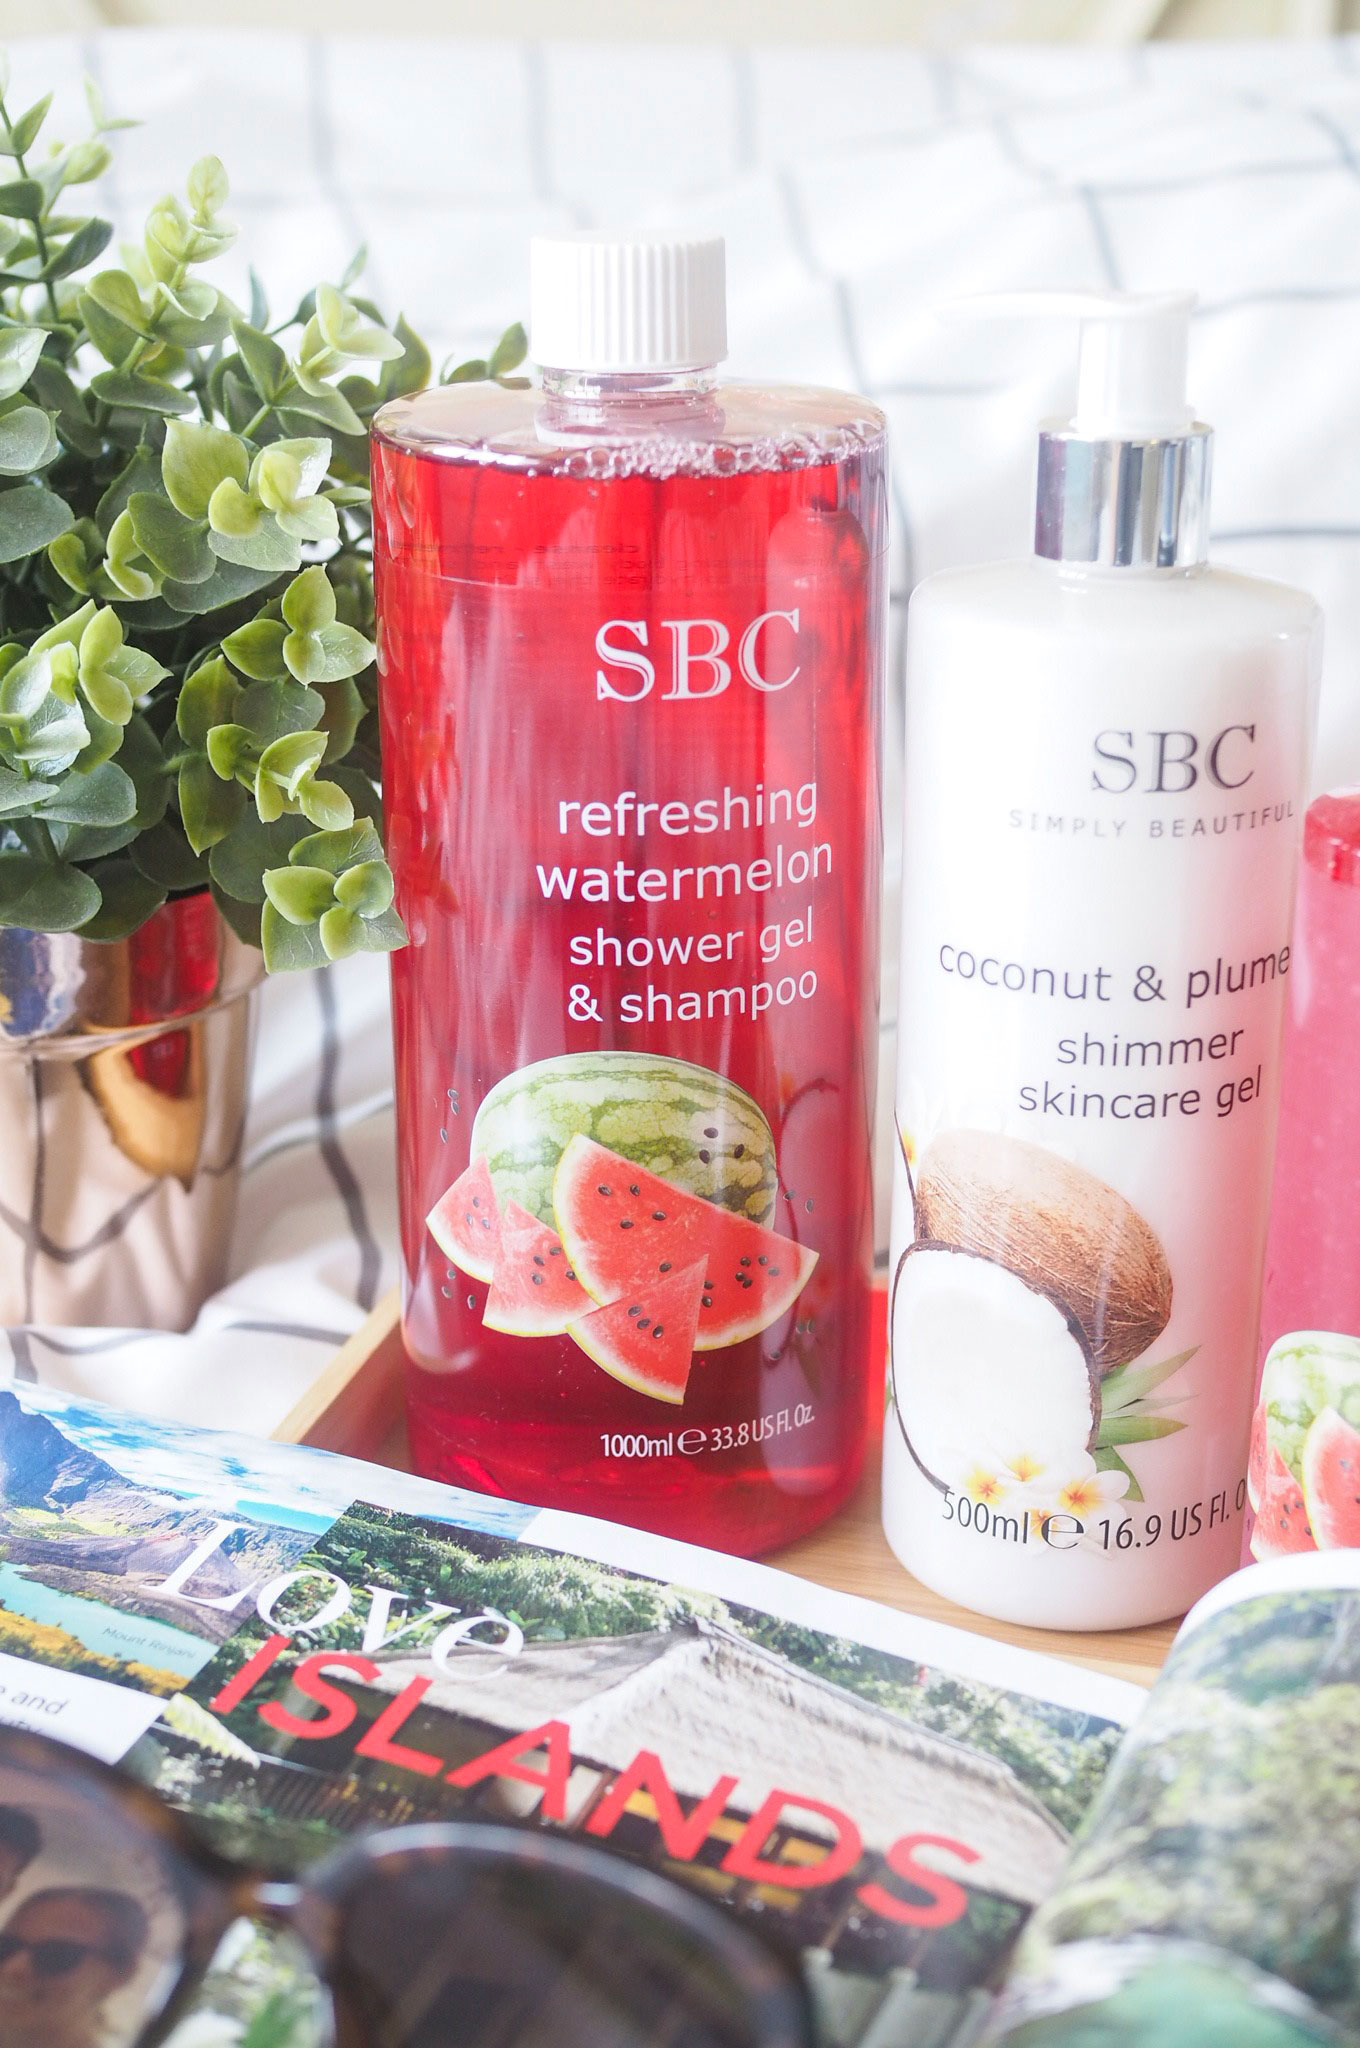 SBC Refreshing Watermelon Shower Gel and Shampoo Review